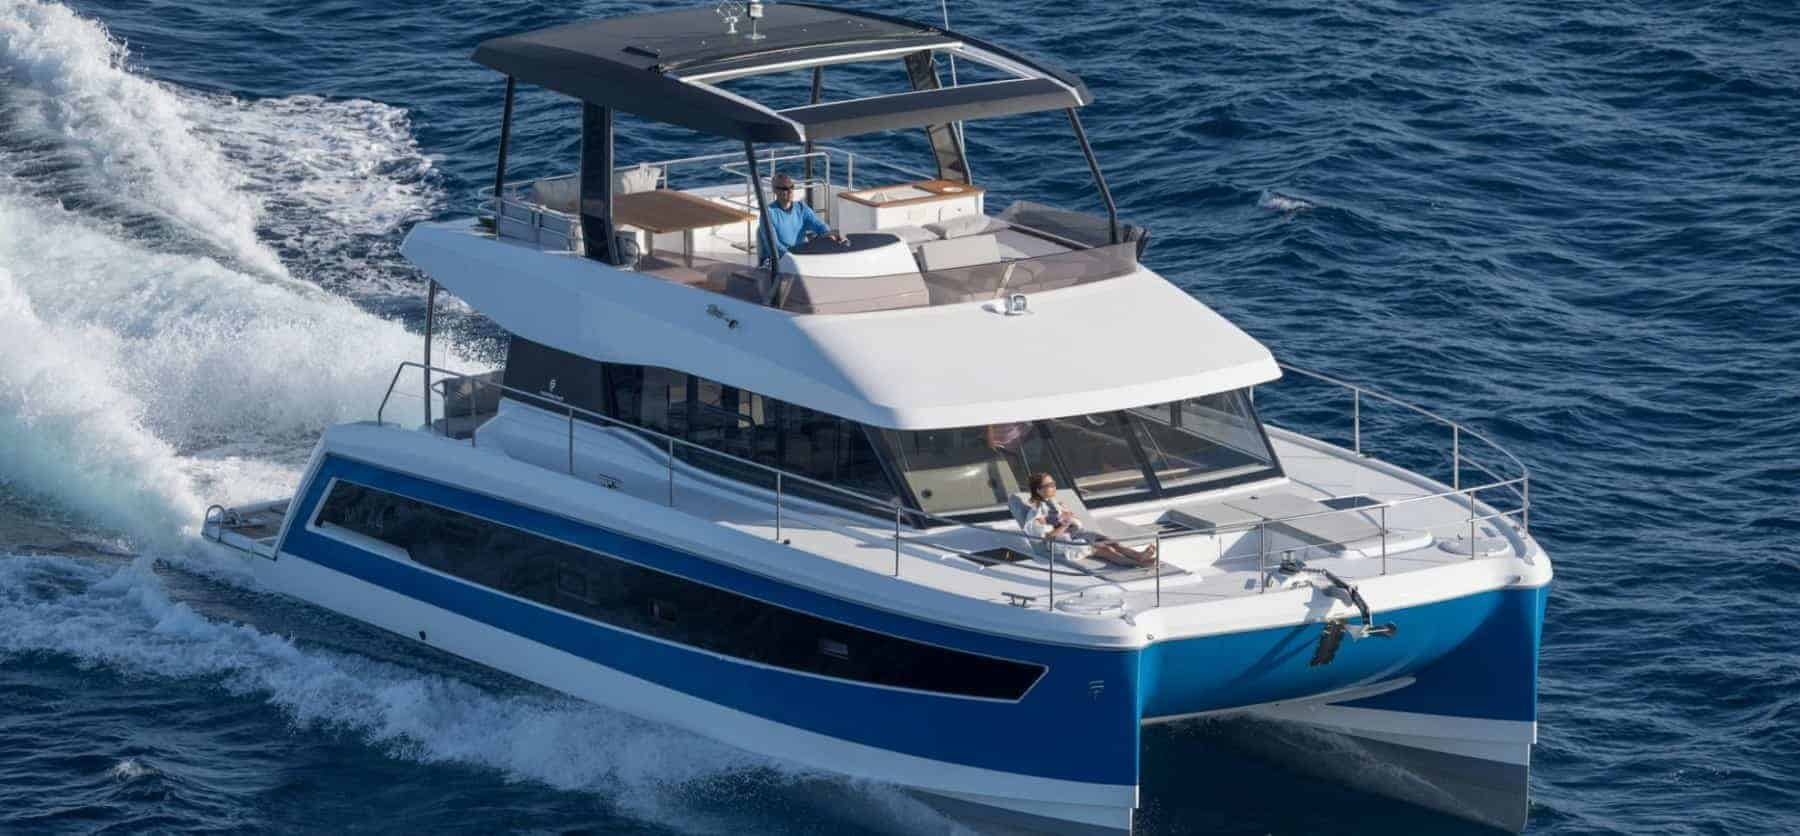 Aerial view of the Fountaine Pajot MY 44 in action with the motors running and a man at the steering wheel and a woman chilling on front deck